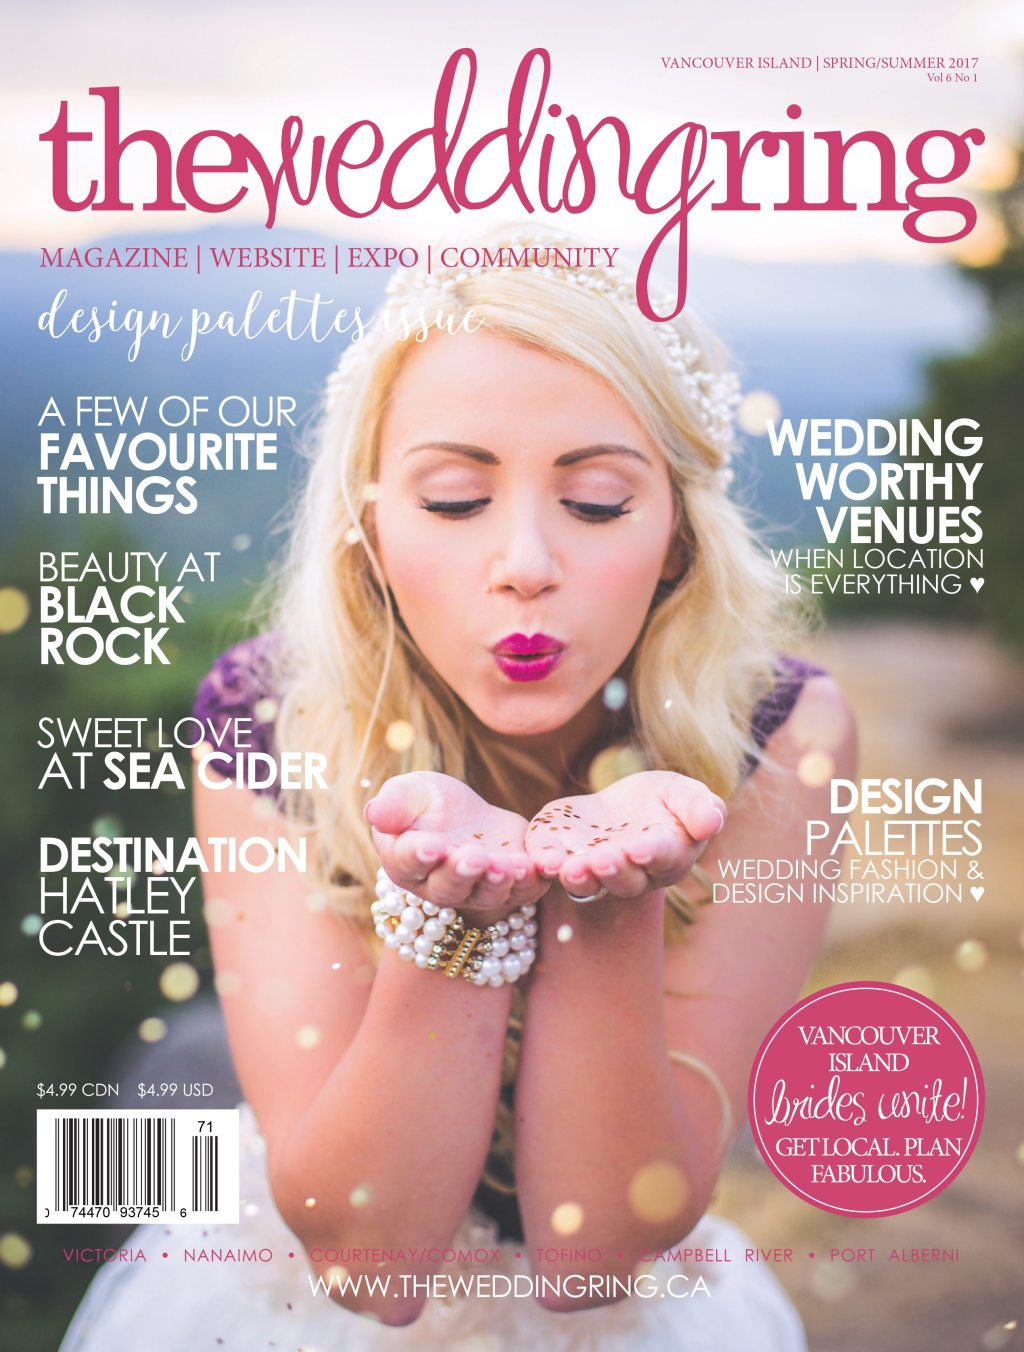 The Wedding Ring Magazine Vancouver Island | Spring Summer 2017